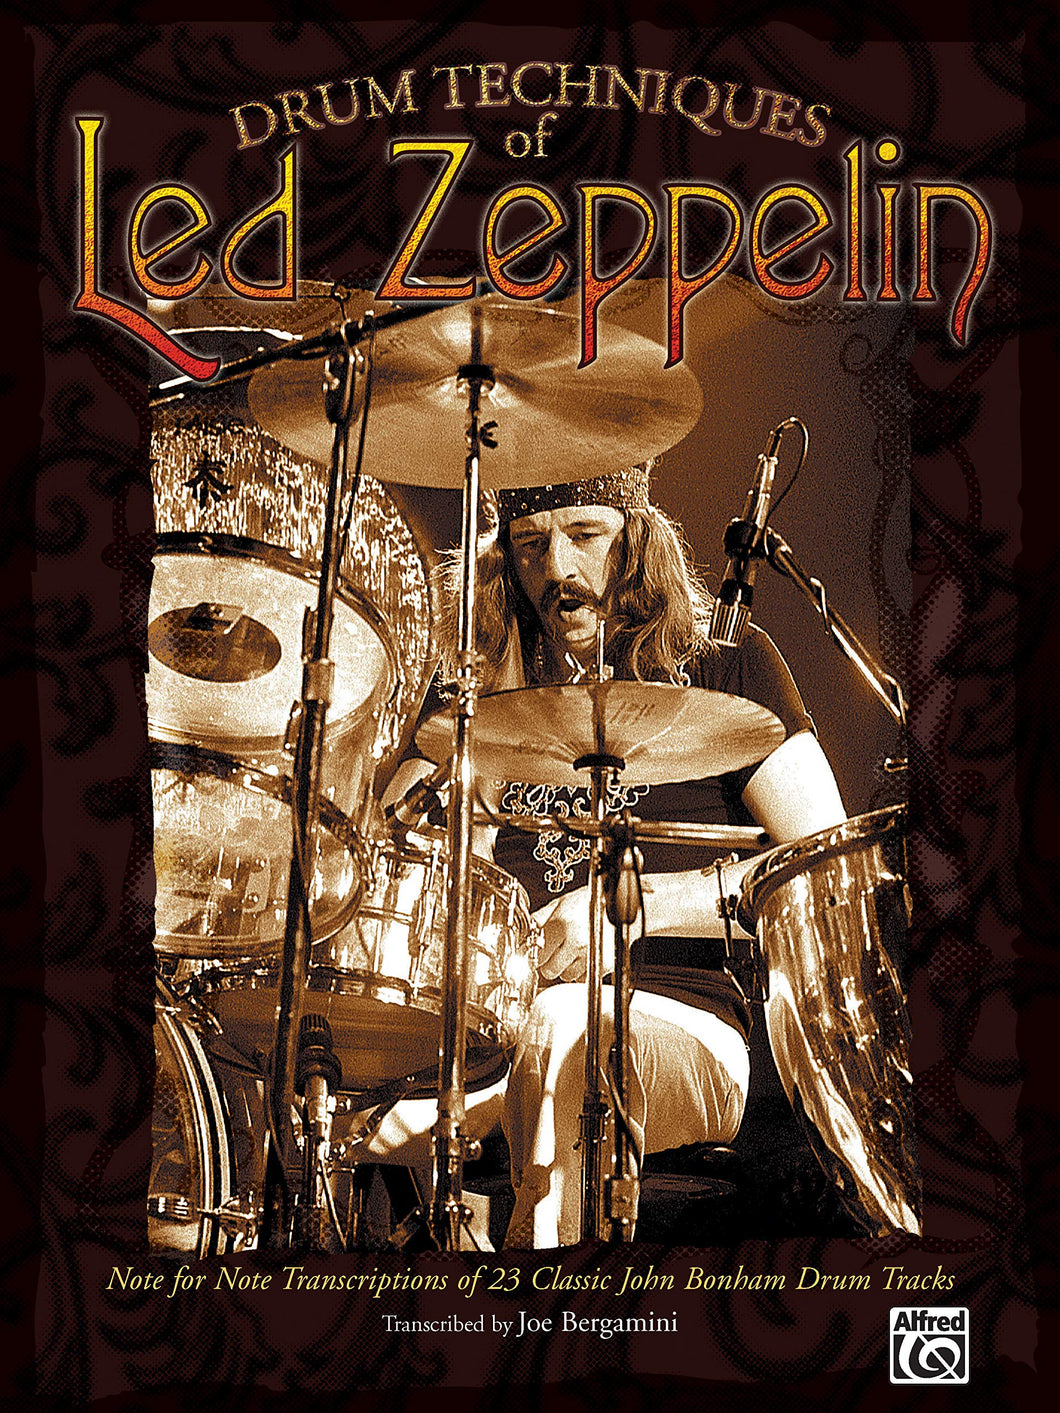 What Is And What Should Never Be - Led Zeppelin - Collection of Drum Transcriptions / Drum Sheet Music - Alfred Music DTLZNFNT